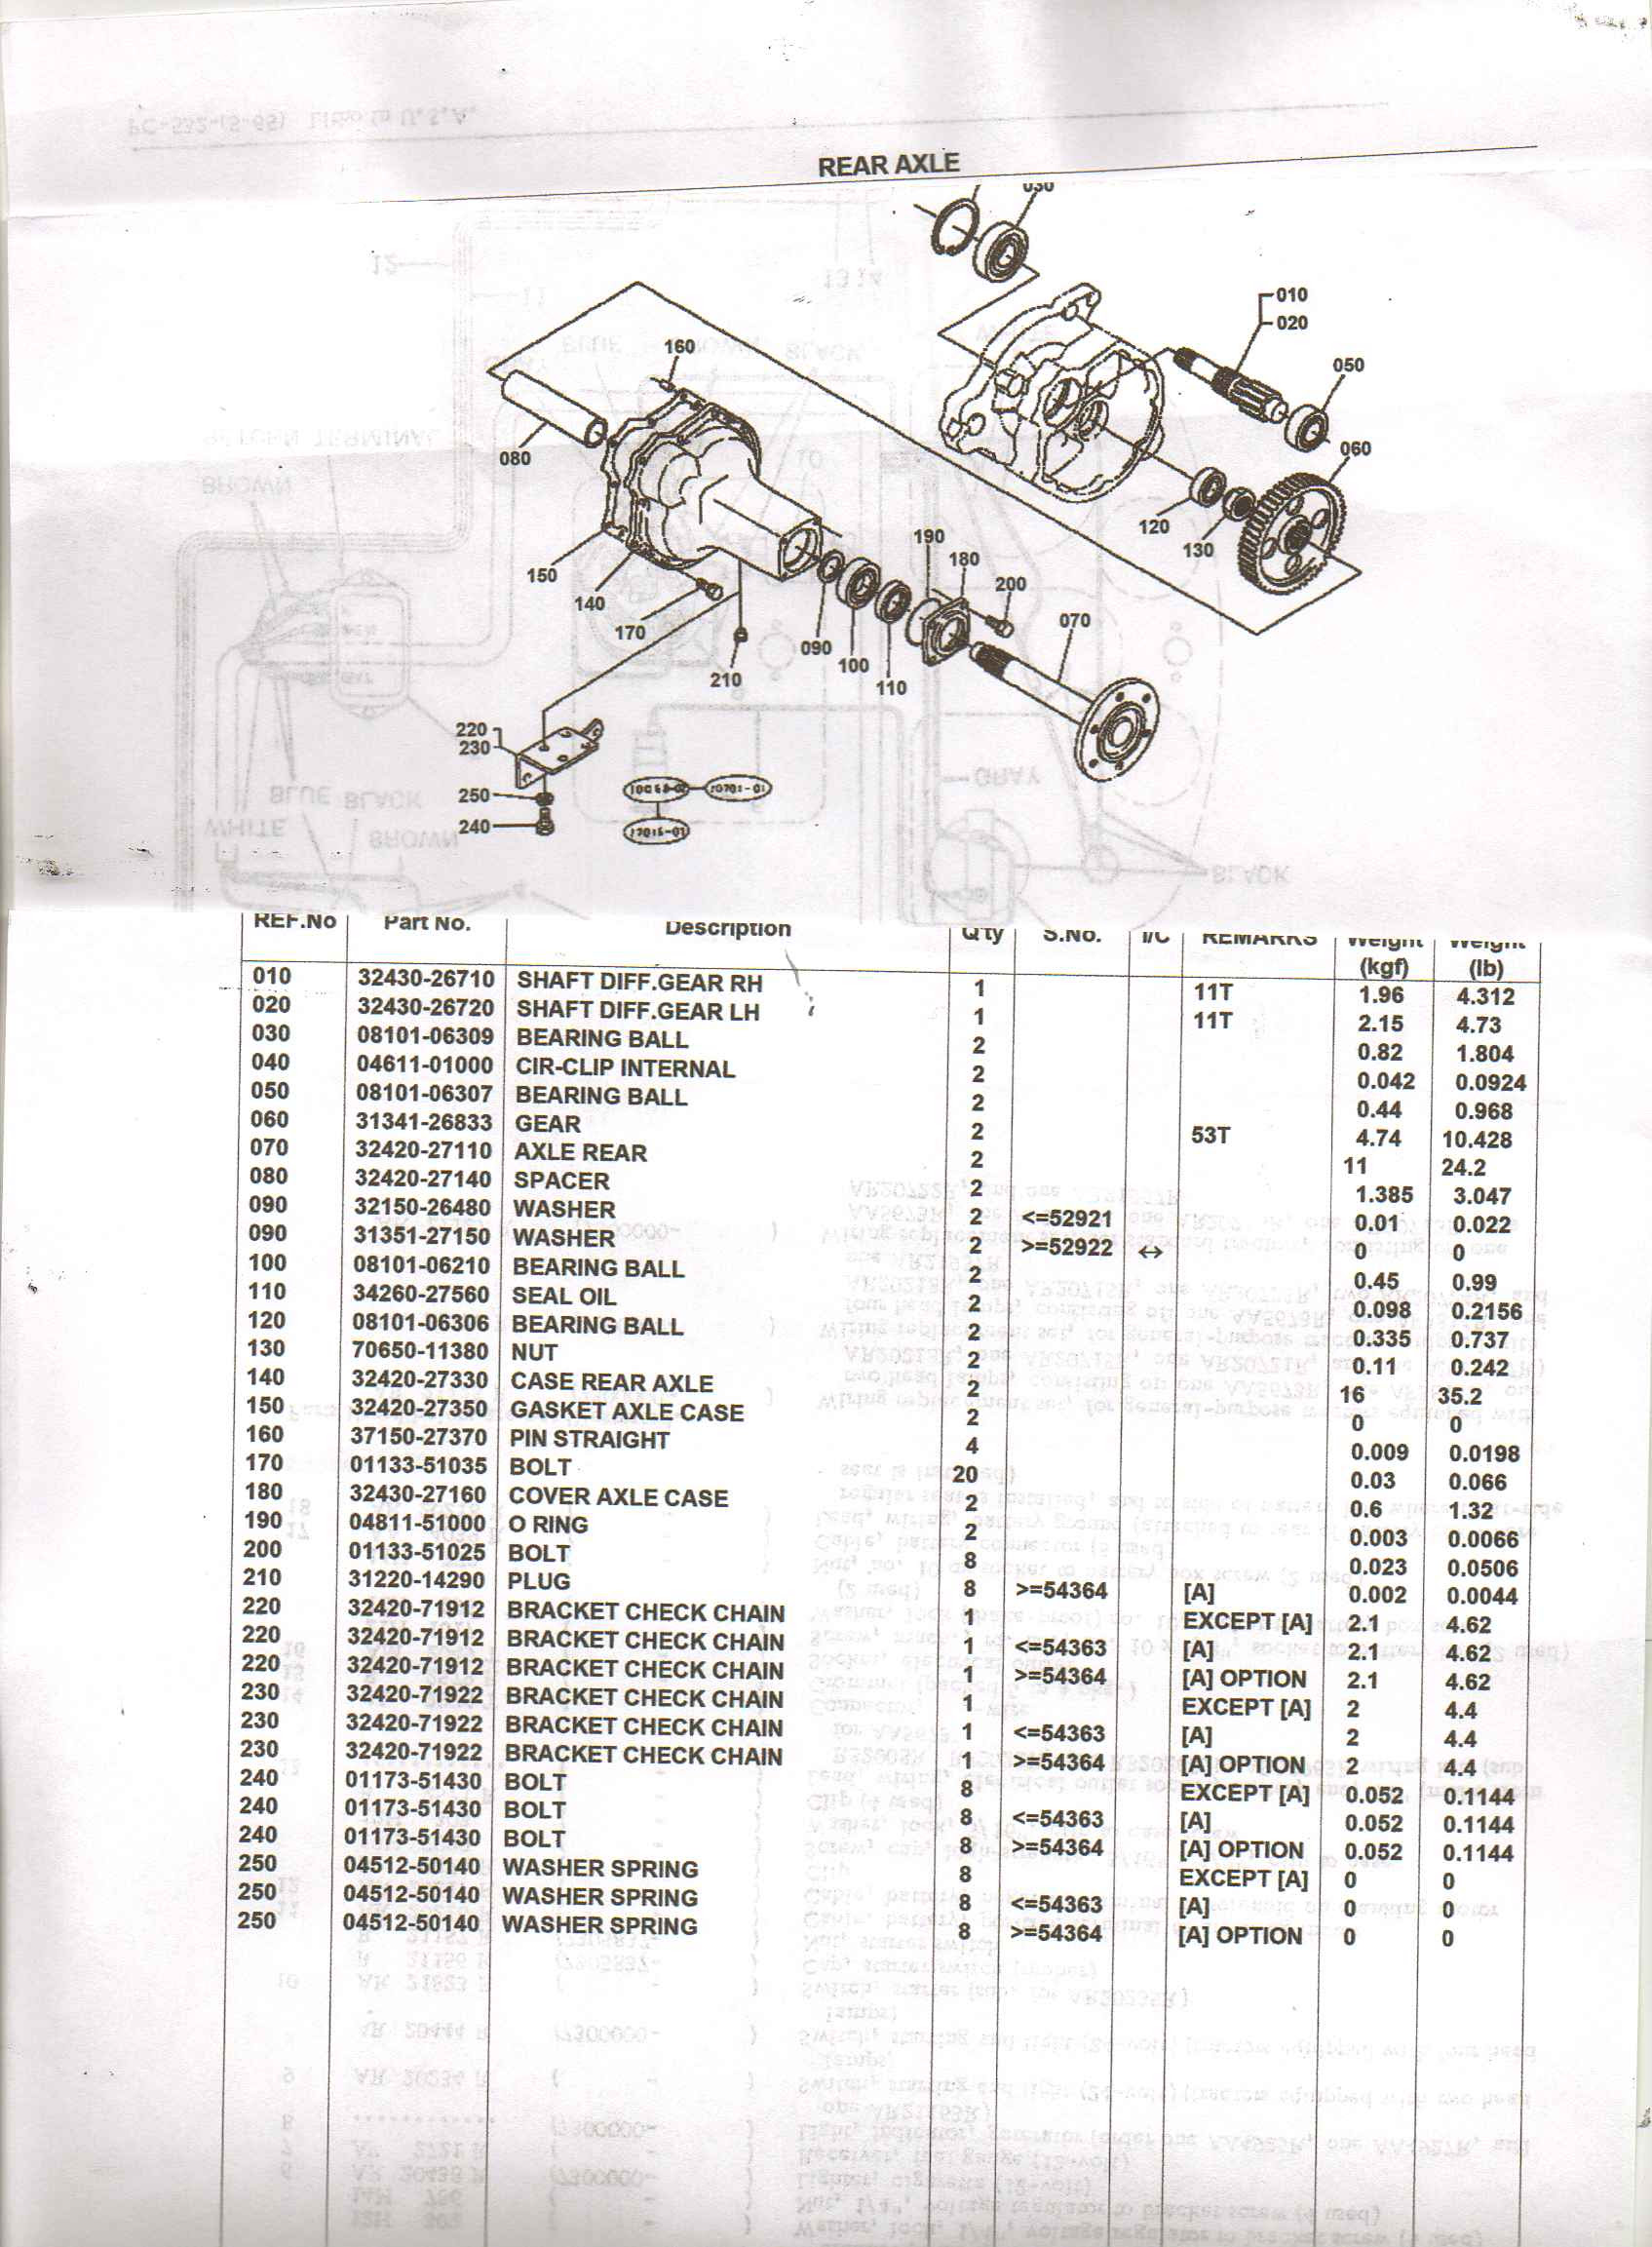 Kubota Rtv 900 Ignition Switch Wiring Diagram from lh5.googleusercontent.com